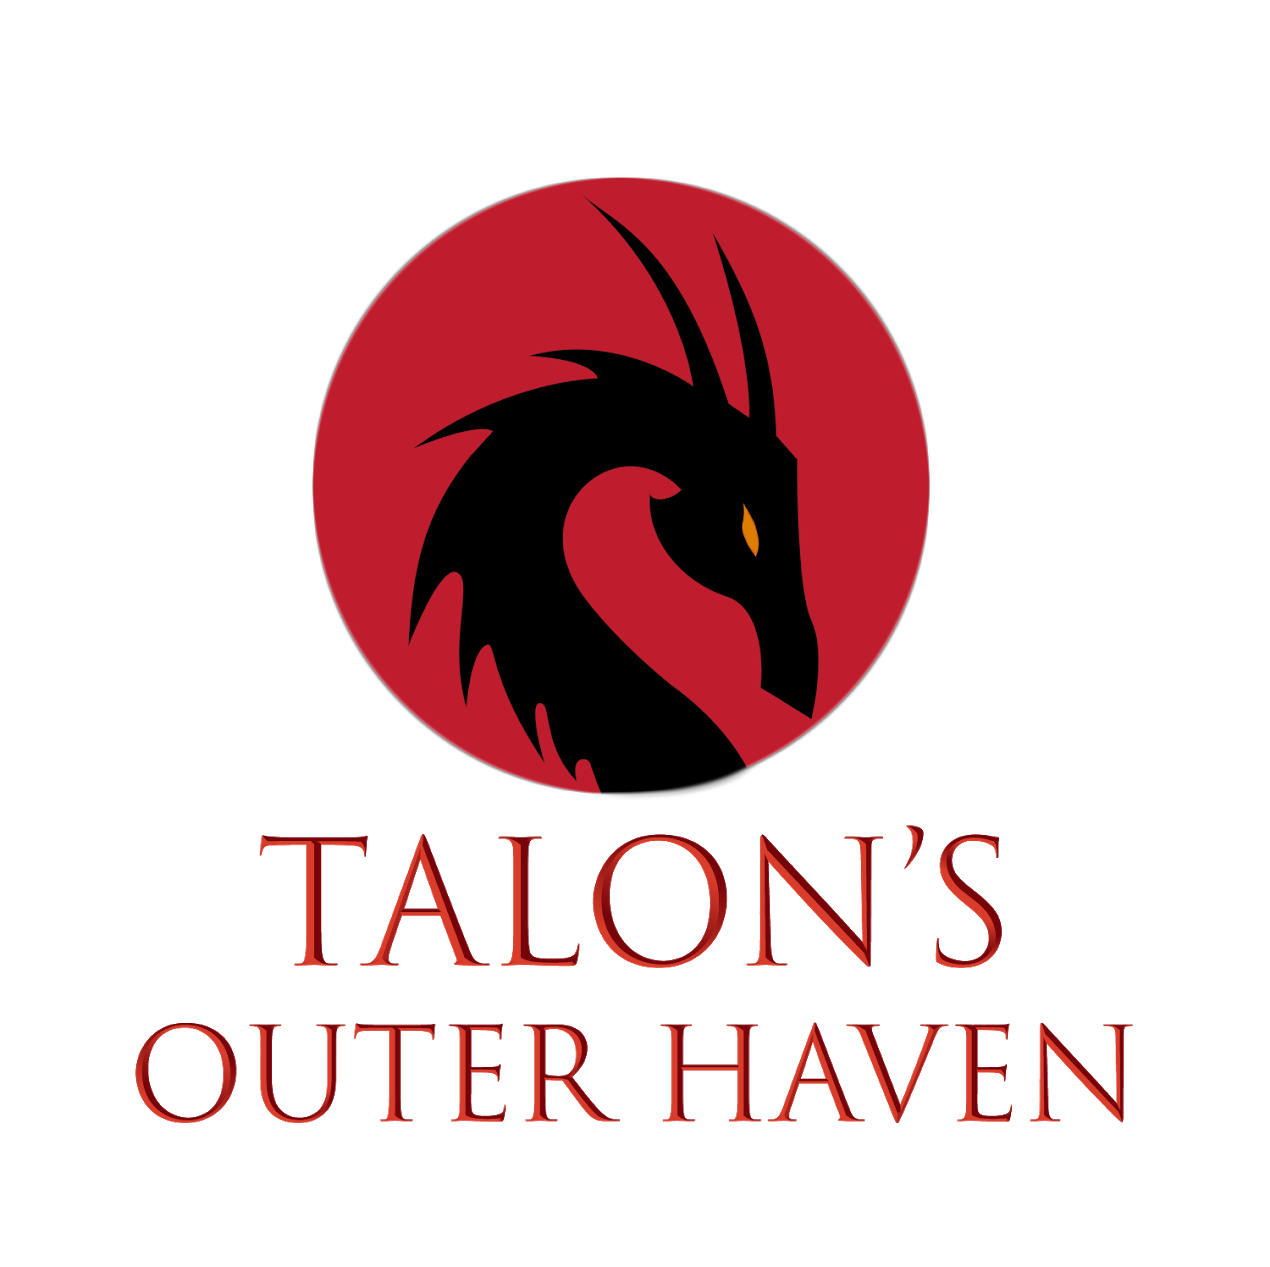 TALON'S OUTER HAVEN - Sponsor